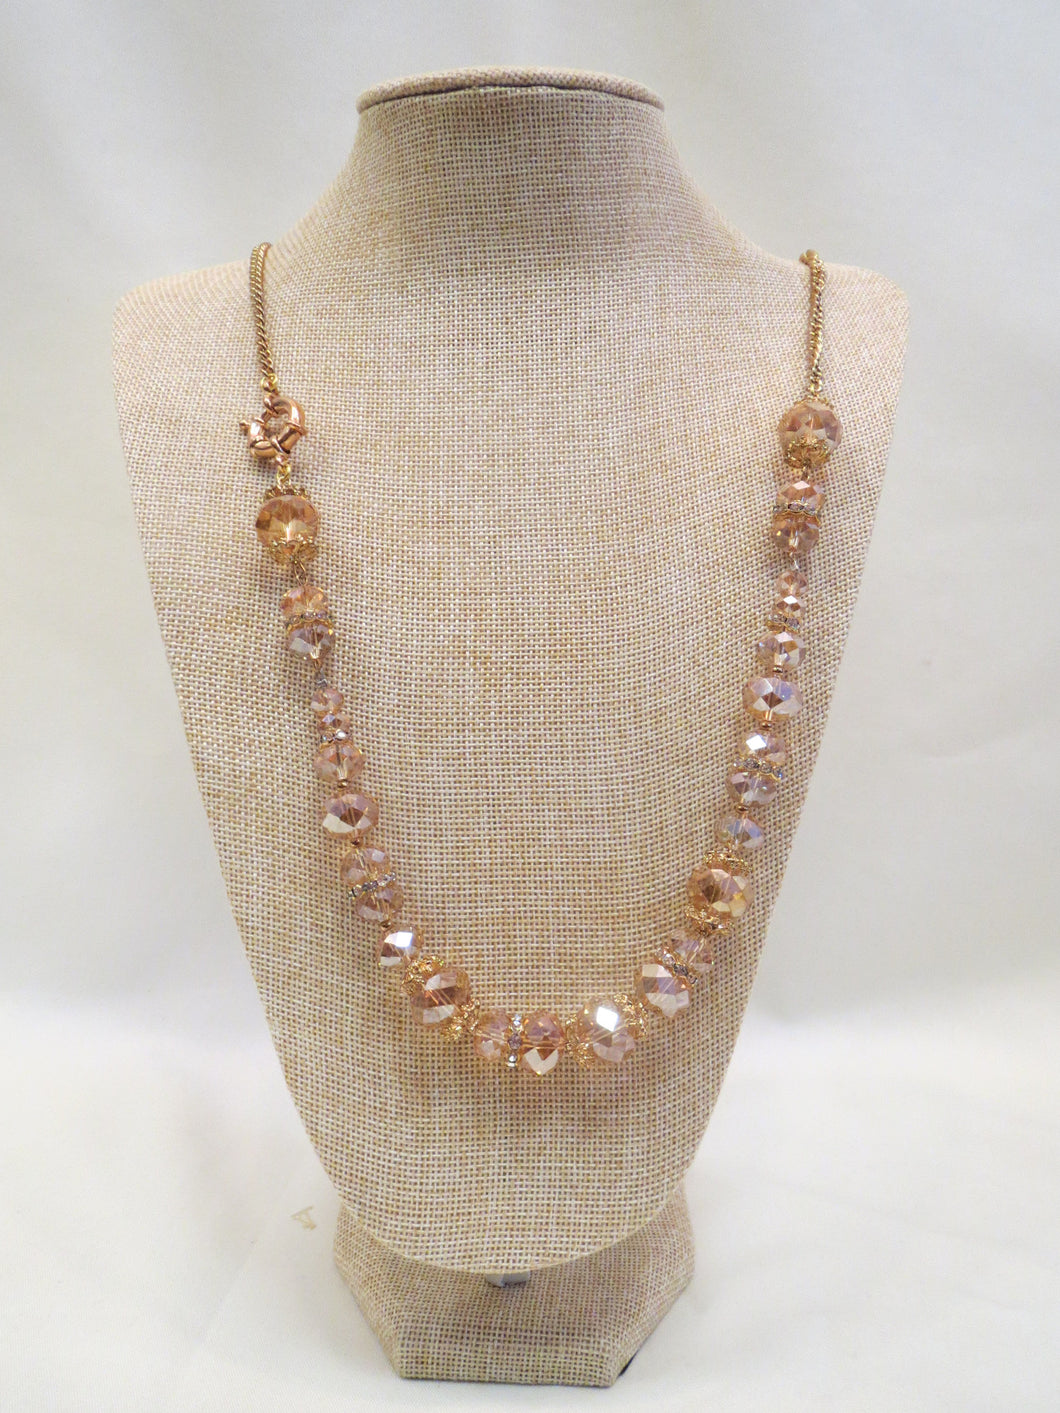 ADO | Burnished Gold Beaded Necklace - All Decd Out